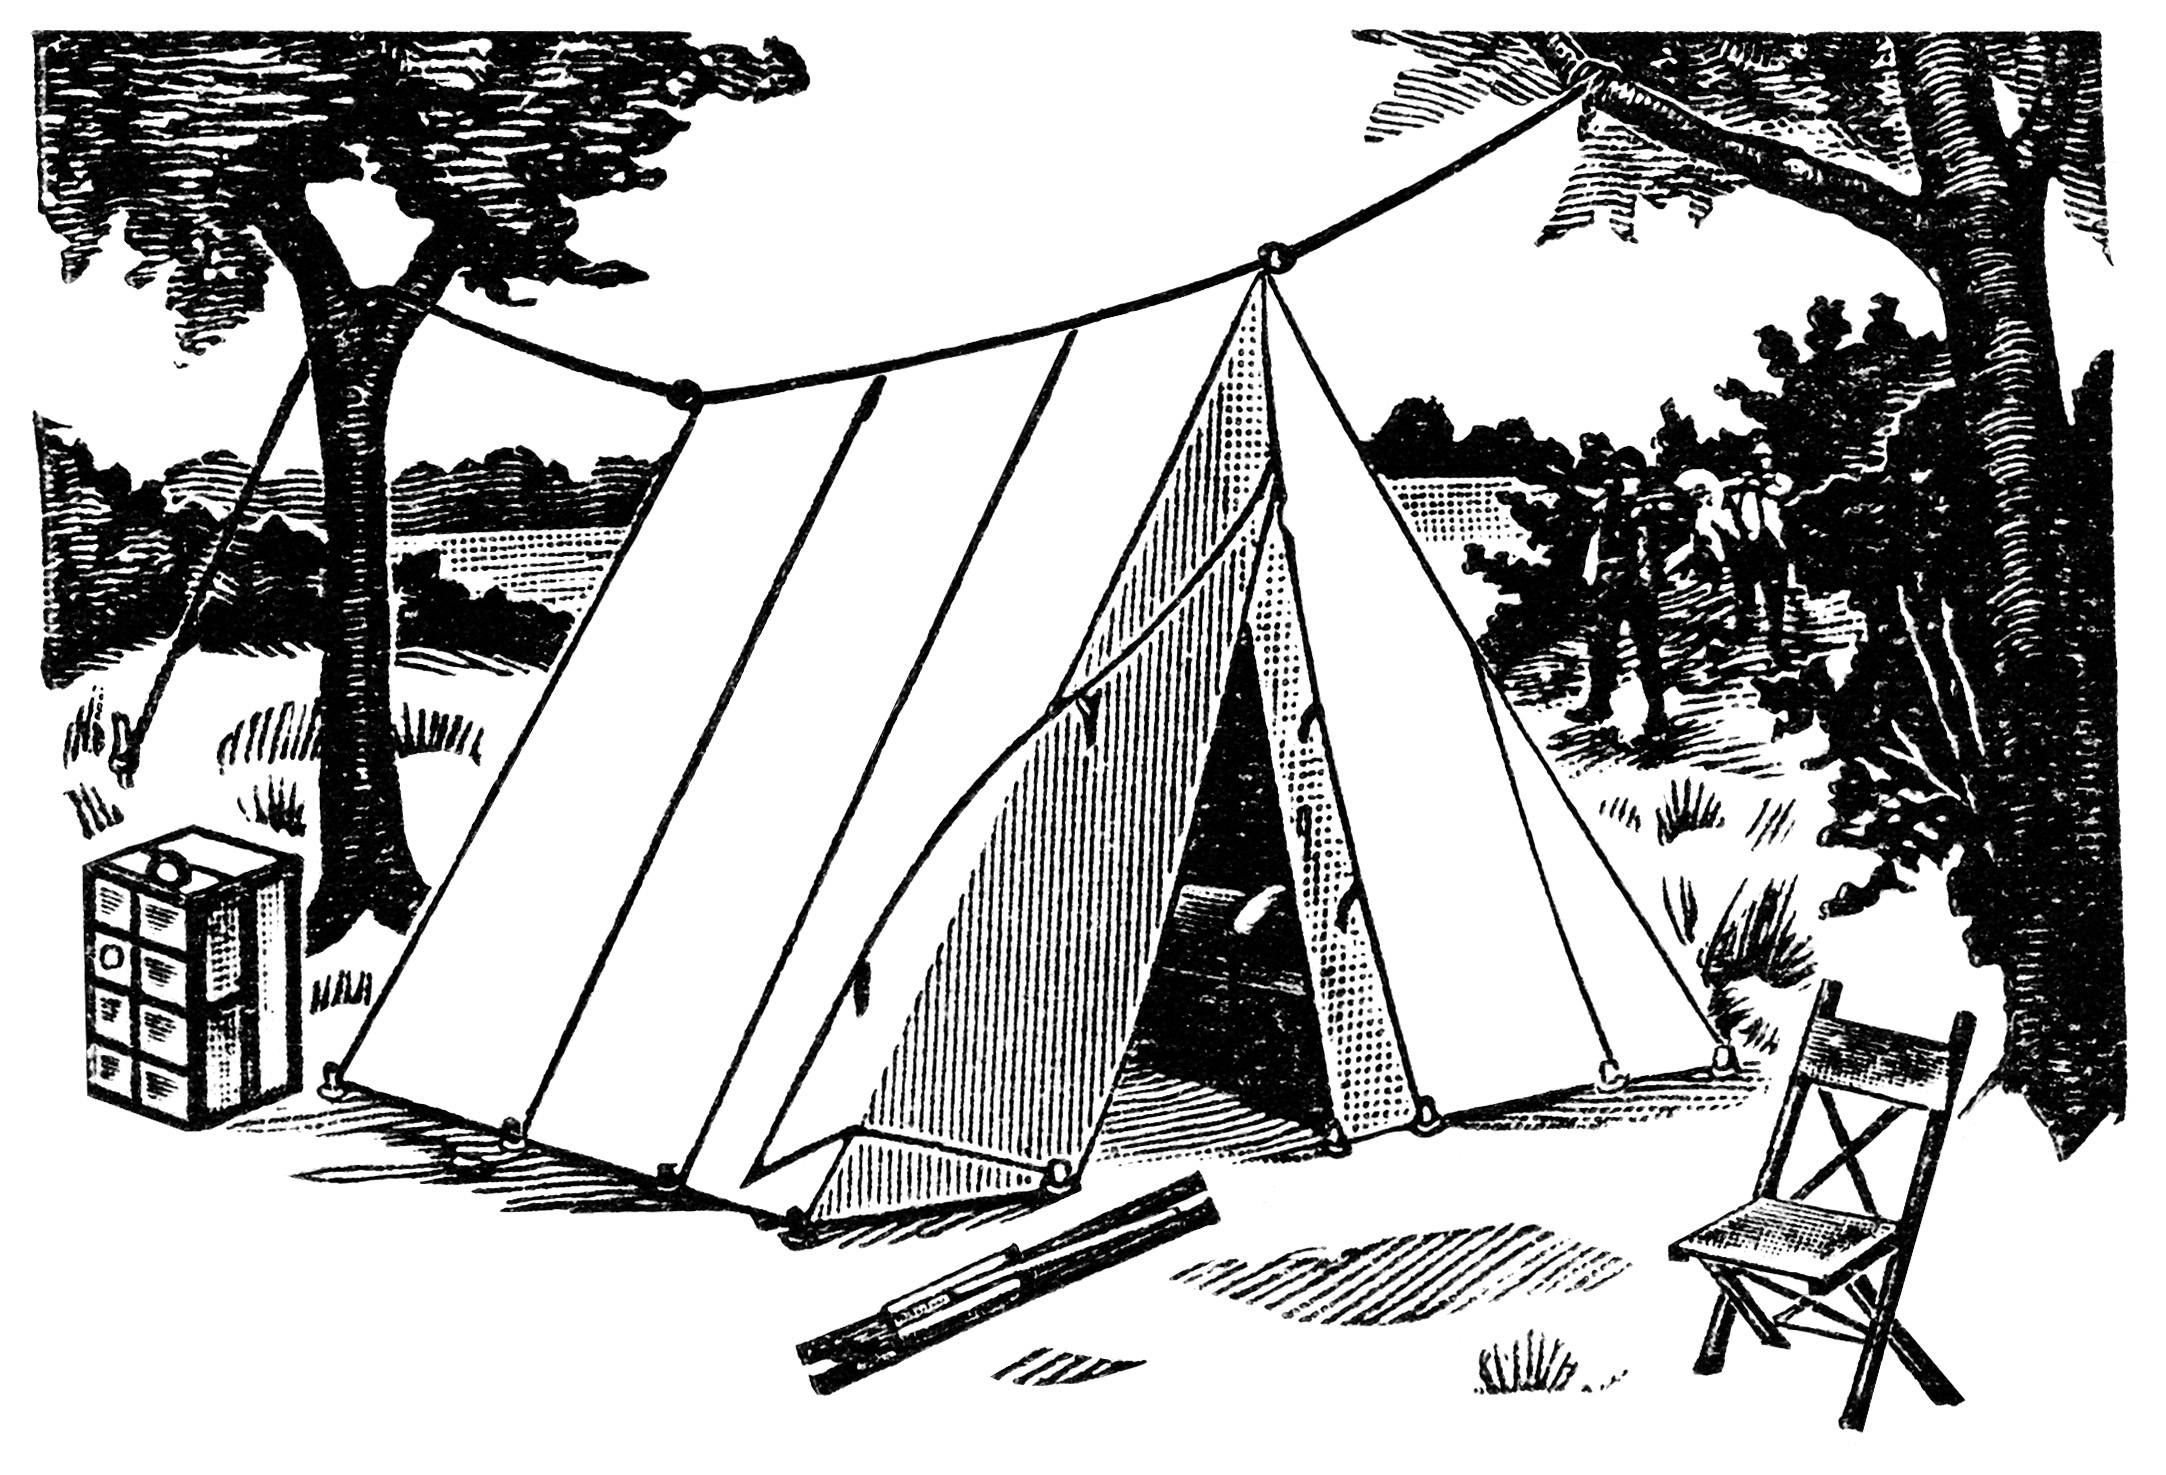 Camping Tent Clipart Black And White Click On Images To Enlarge